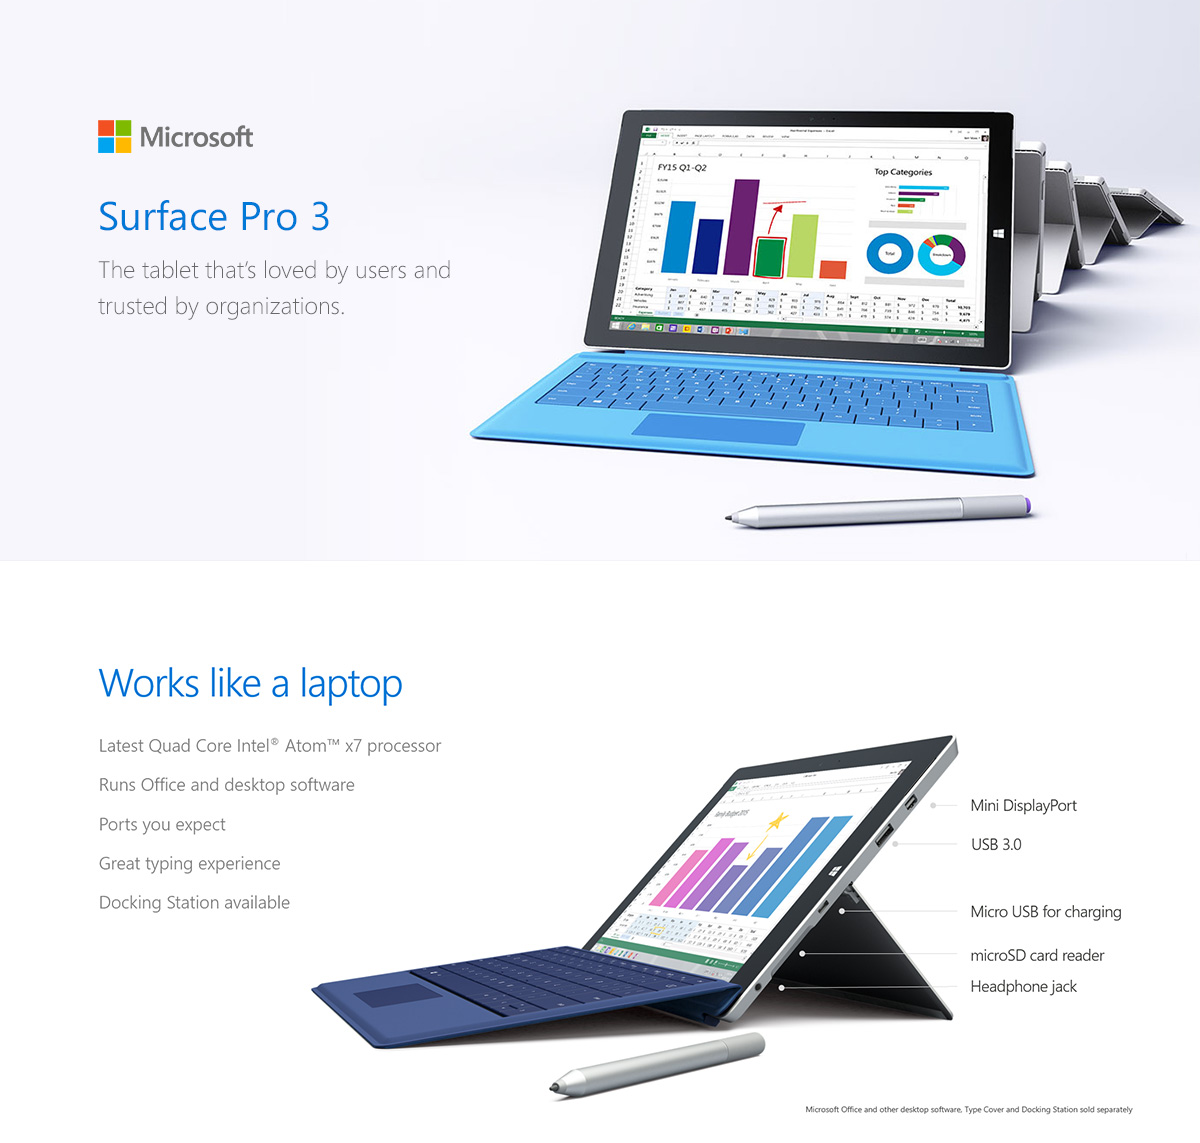 microsoft-surfacepro3-lp.jpg